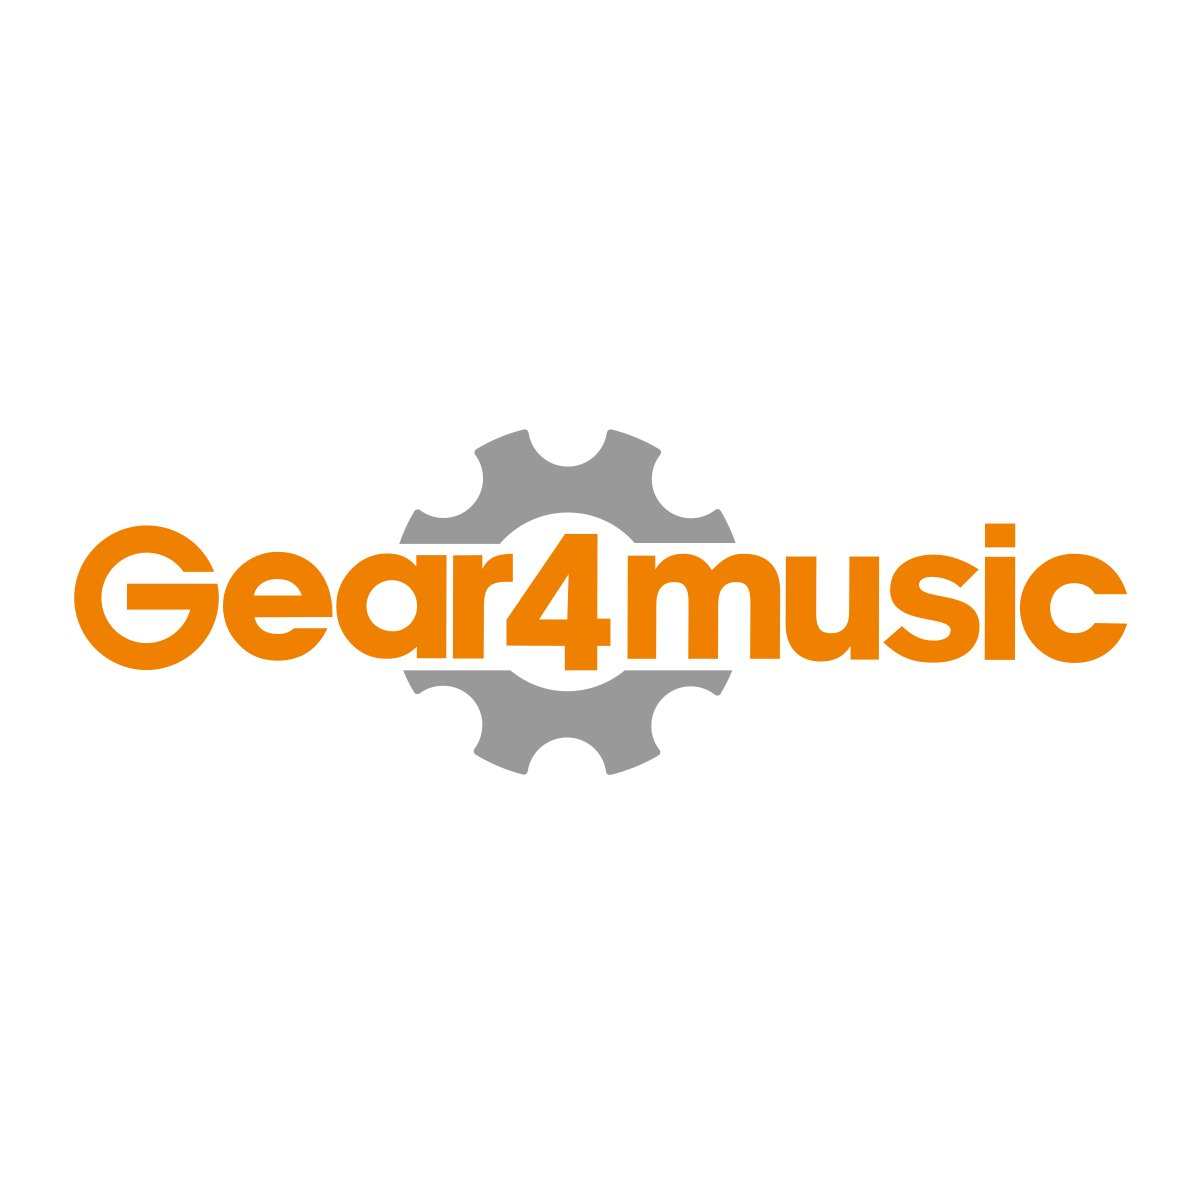 Piano Digital Vertical DP-90U de Gear4music + Pack de Accesorios